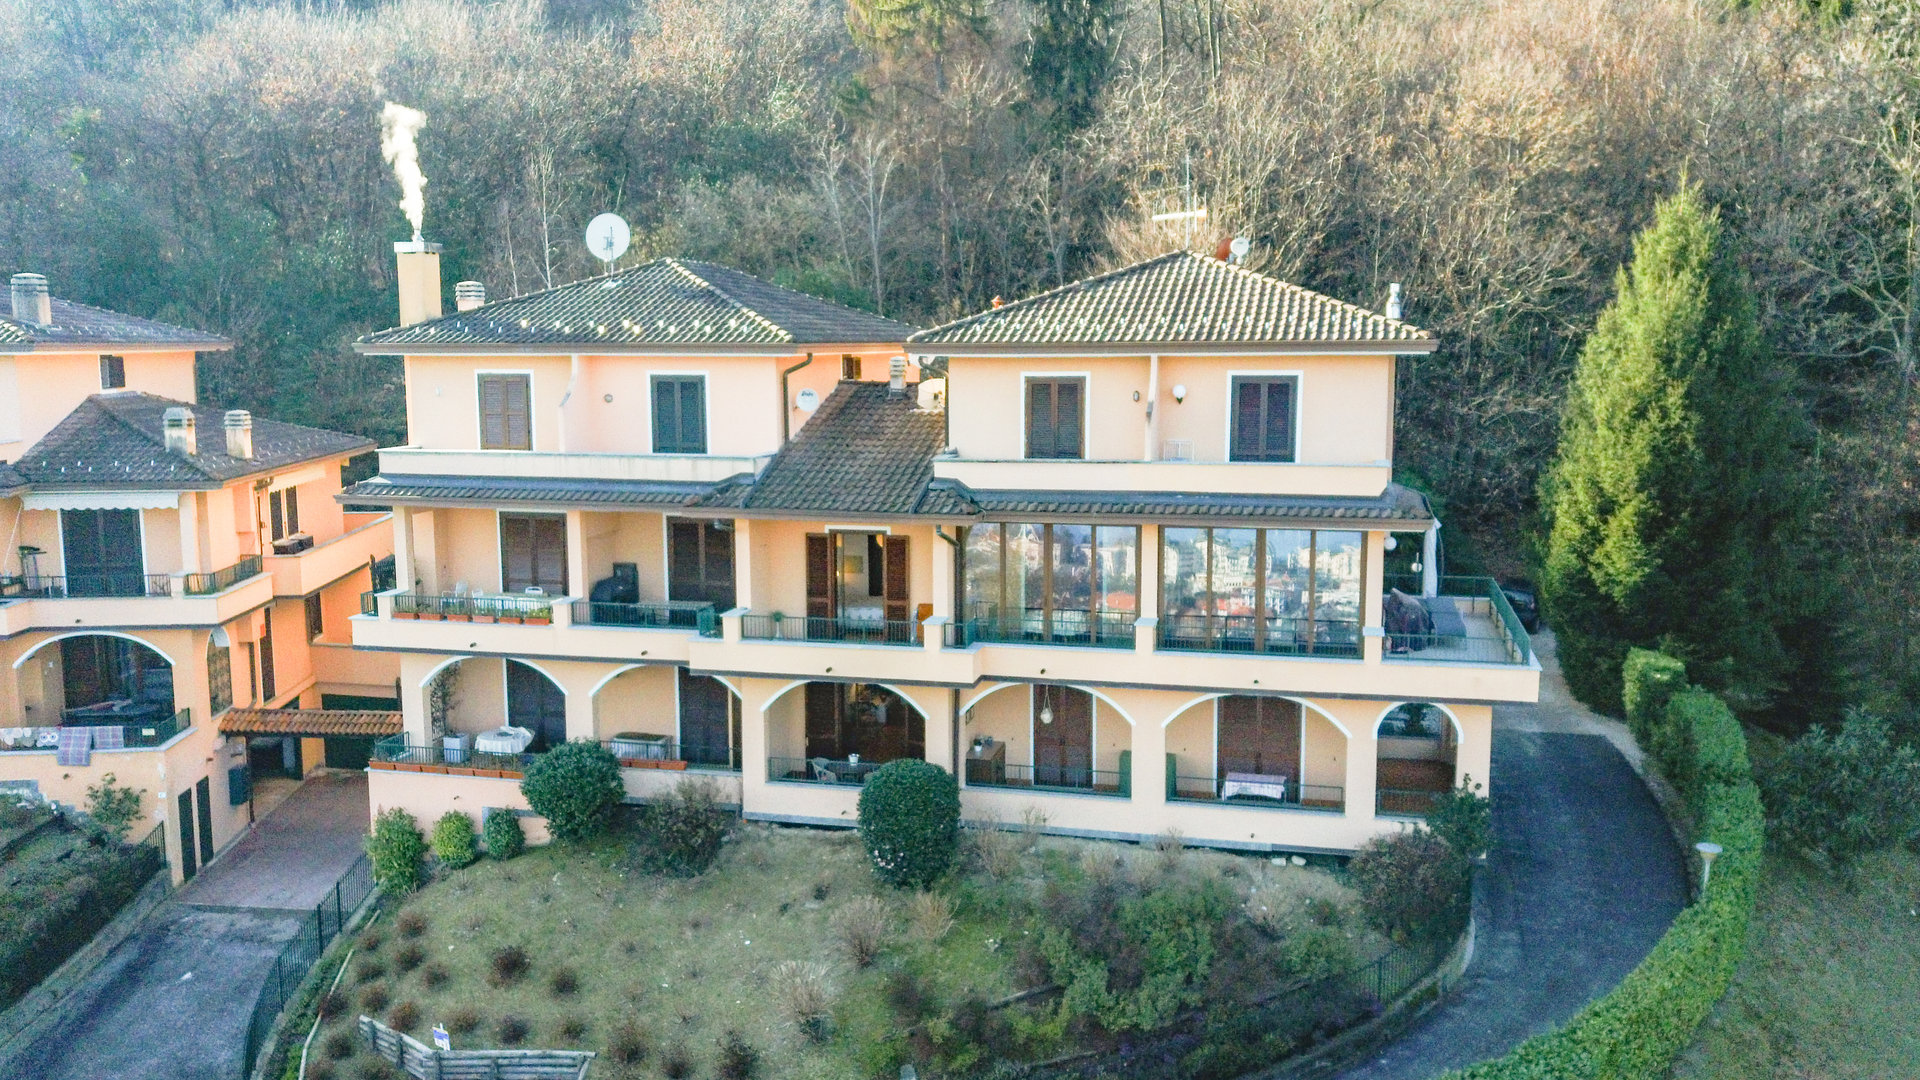 Apartment for sale in Stresa inside a complex